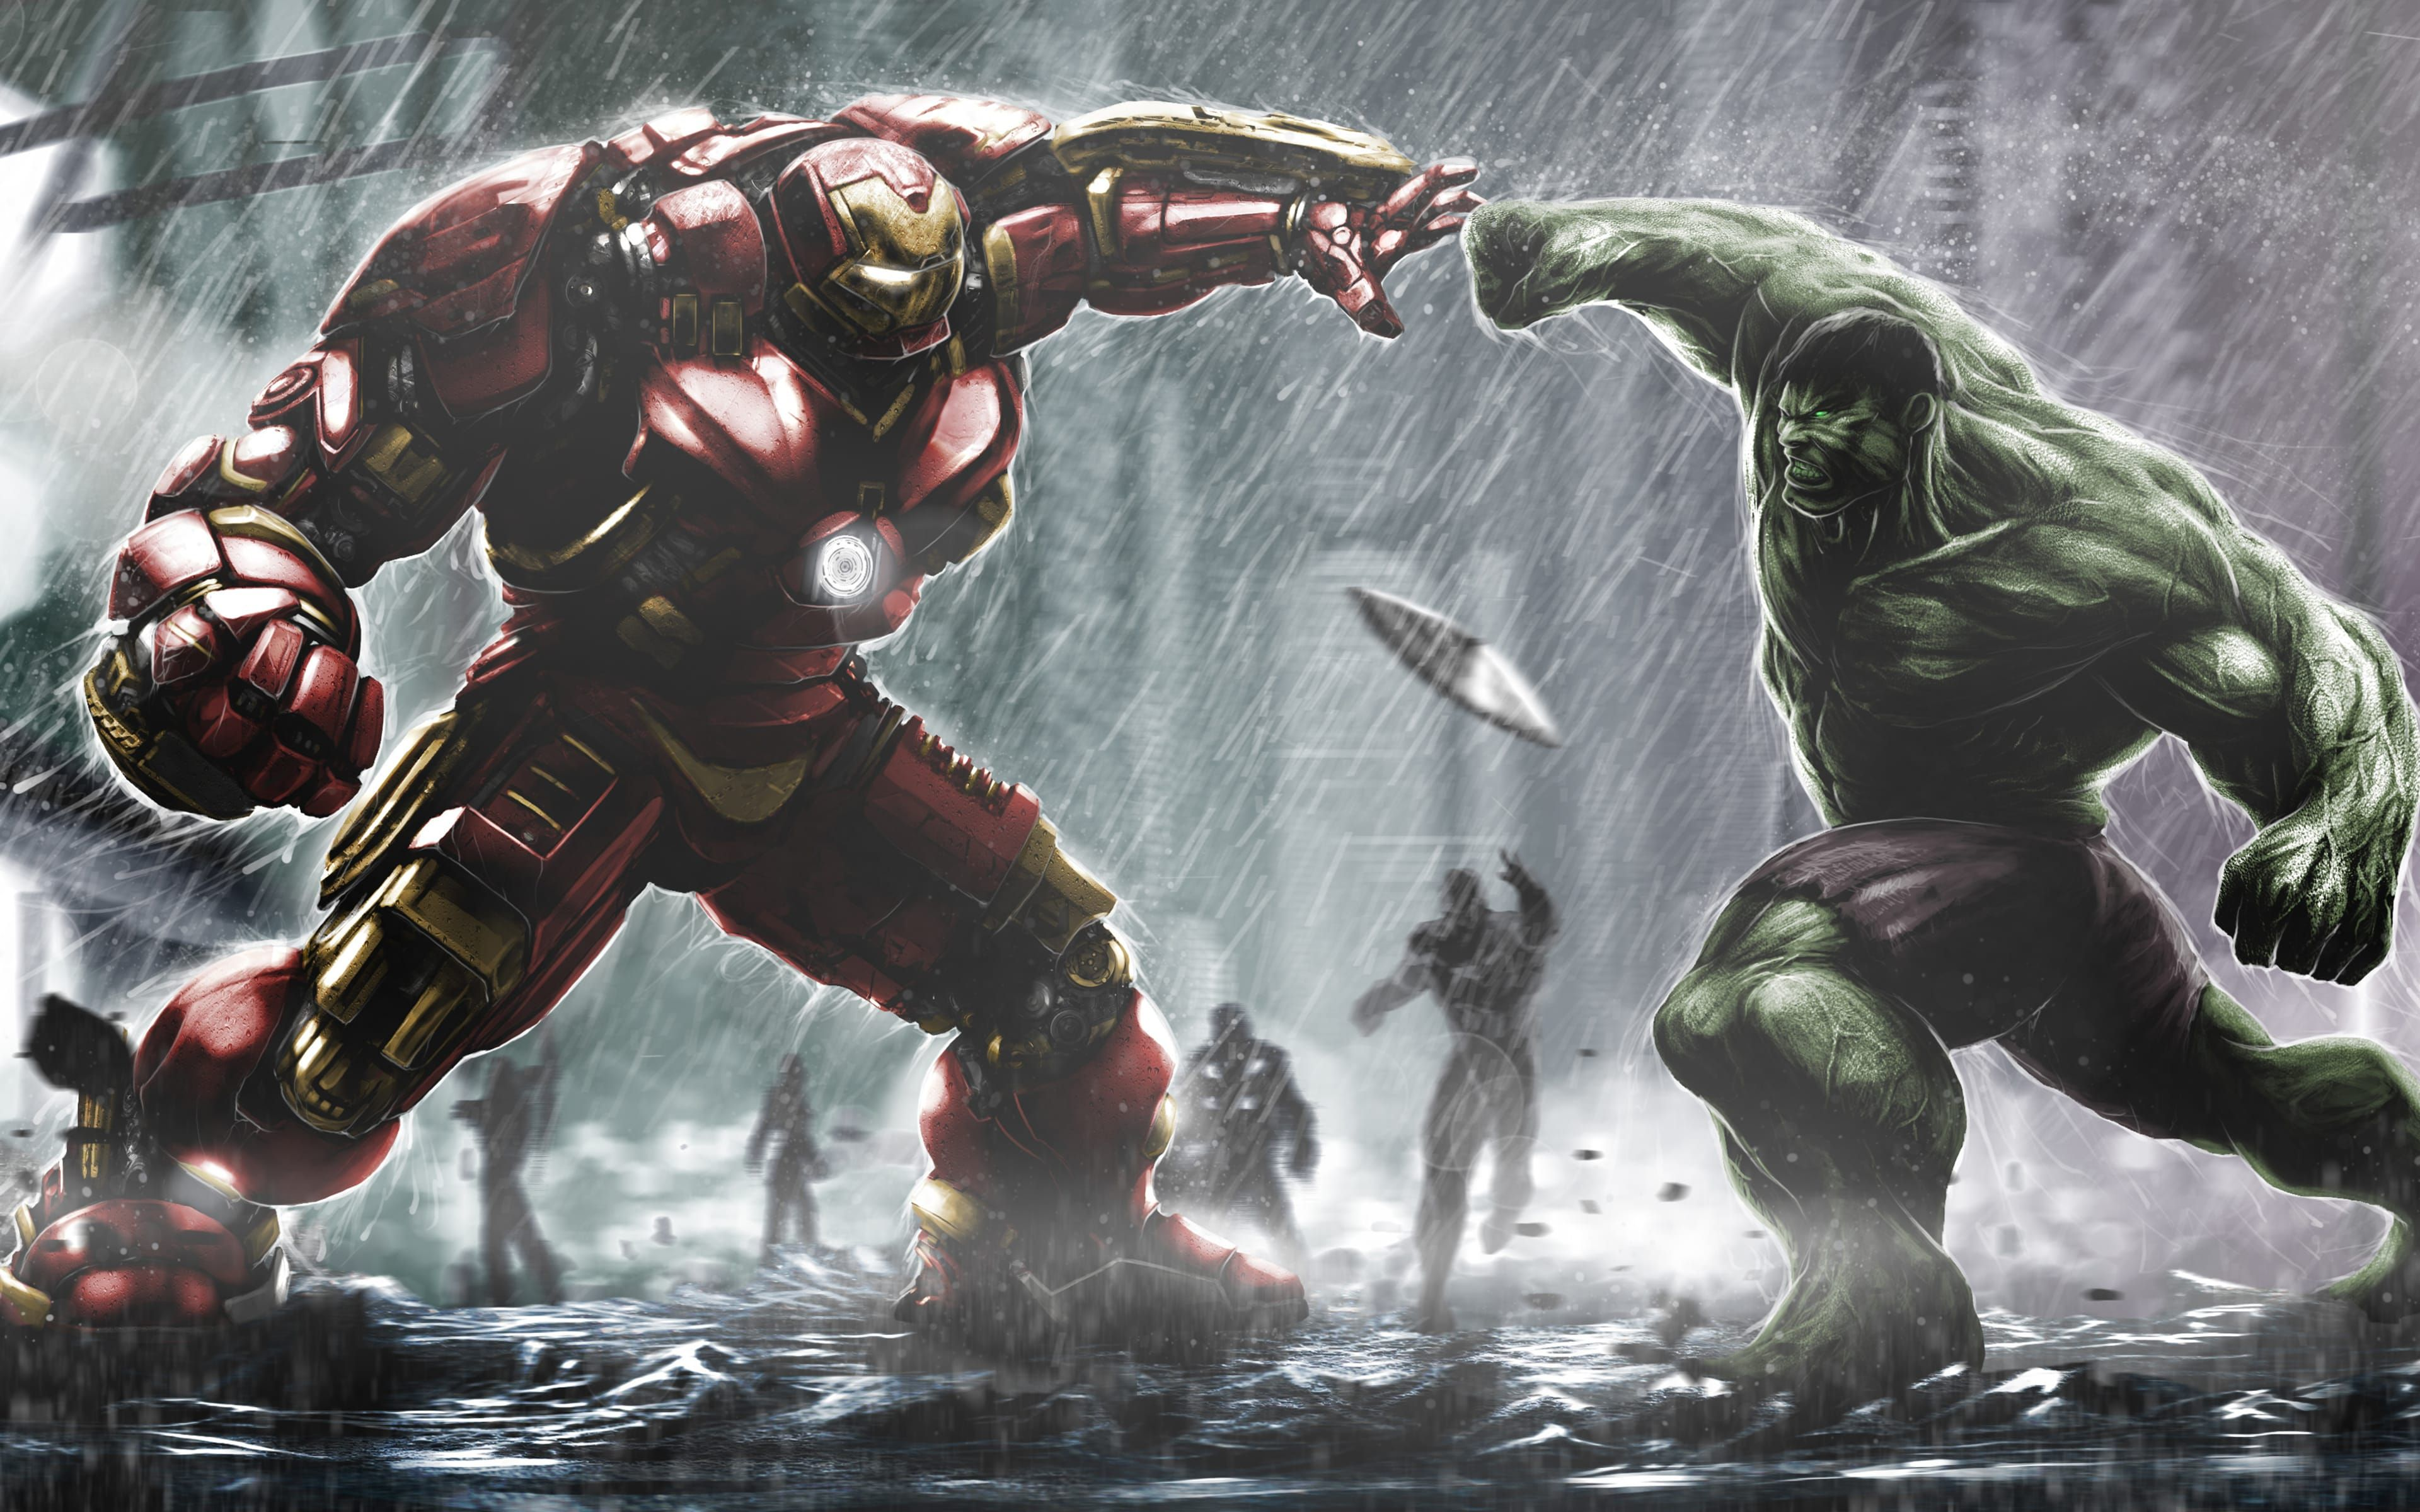 Marvel Superhero Hulkbuster Hulk Is An HD Desktop Wallpaper Posted In Our Free Image Collection Of Superheroes Wallpapers